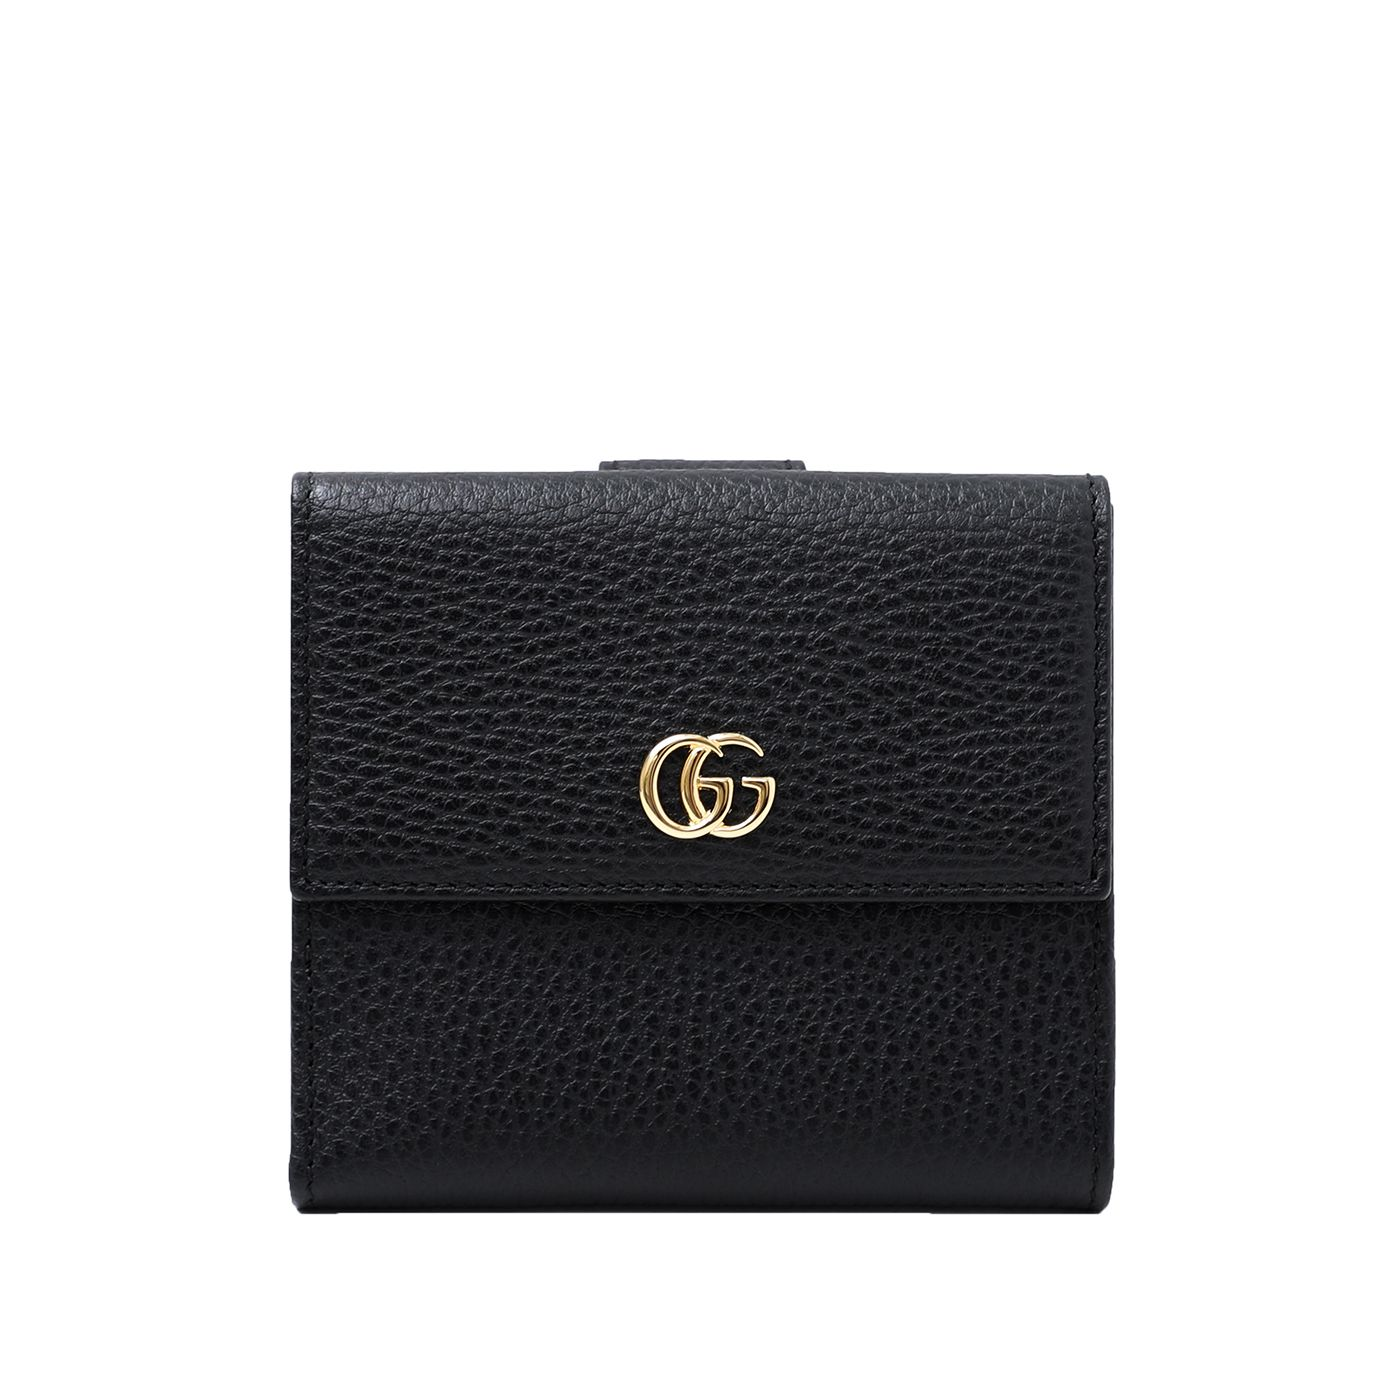 Gucci Black French Flap Wallet